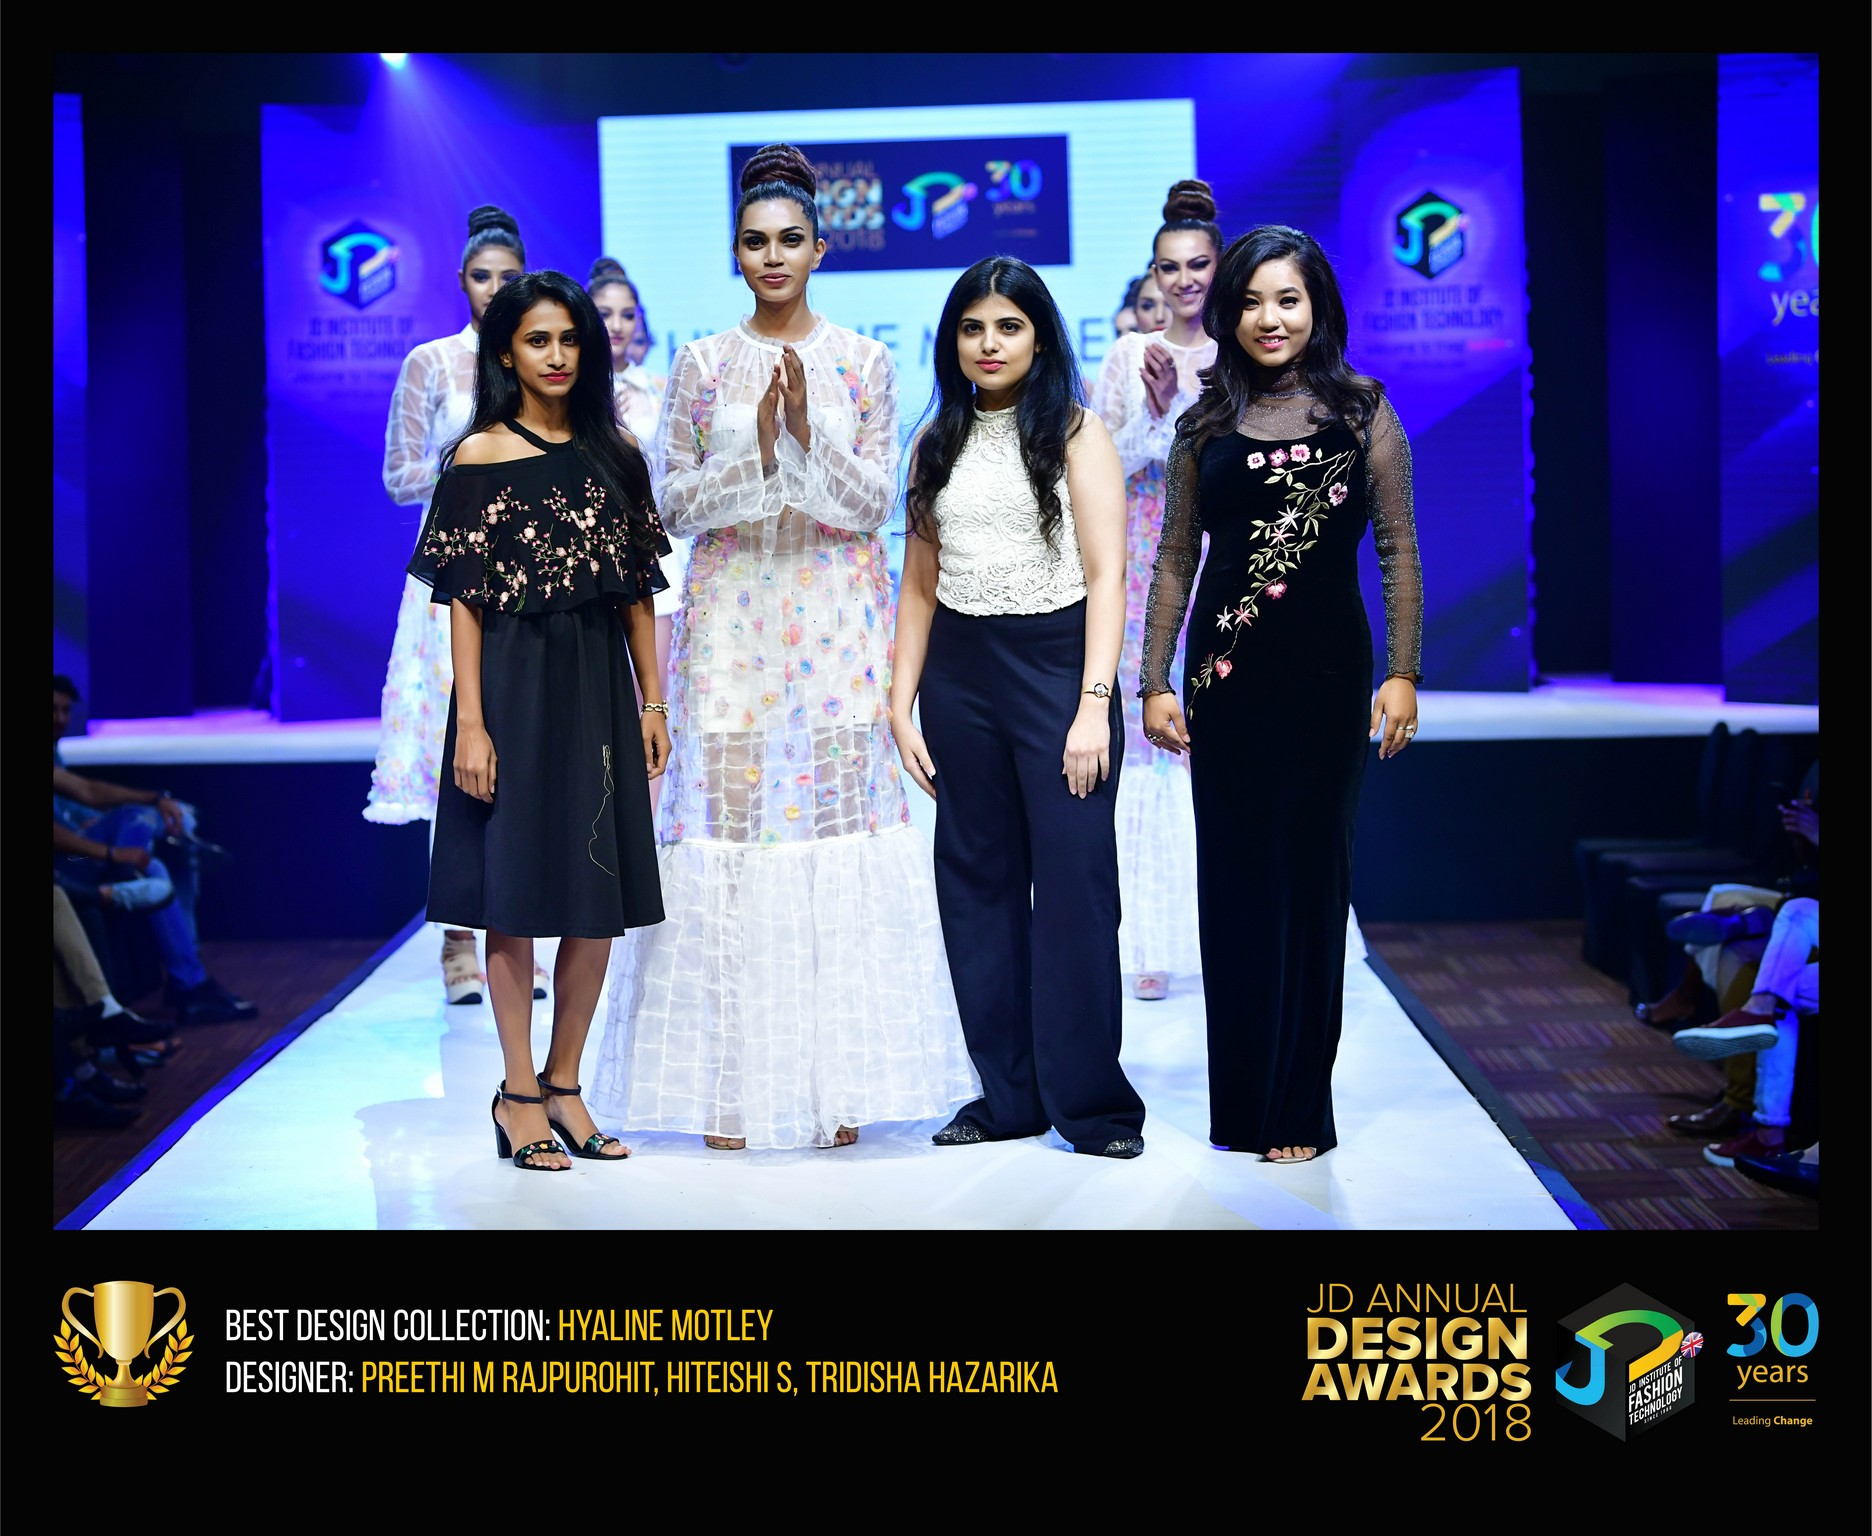 Hyaline Motley – Change – JD Annual Design Awards 2018 | Designer: Preethi, Tridisha and Heitishi from DFD March 2017 | Photography : Jerin Nath (@jerin_nath) hyaline motley Hyaline Motley – Change – JD Annual Design Awards 2018 HYALINE MOTLEY7 final